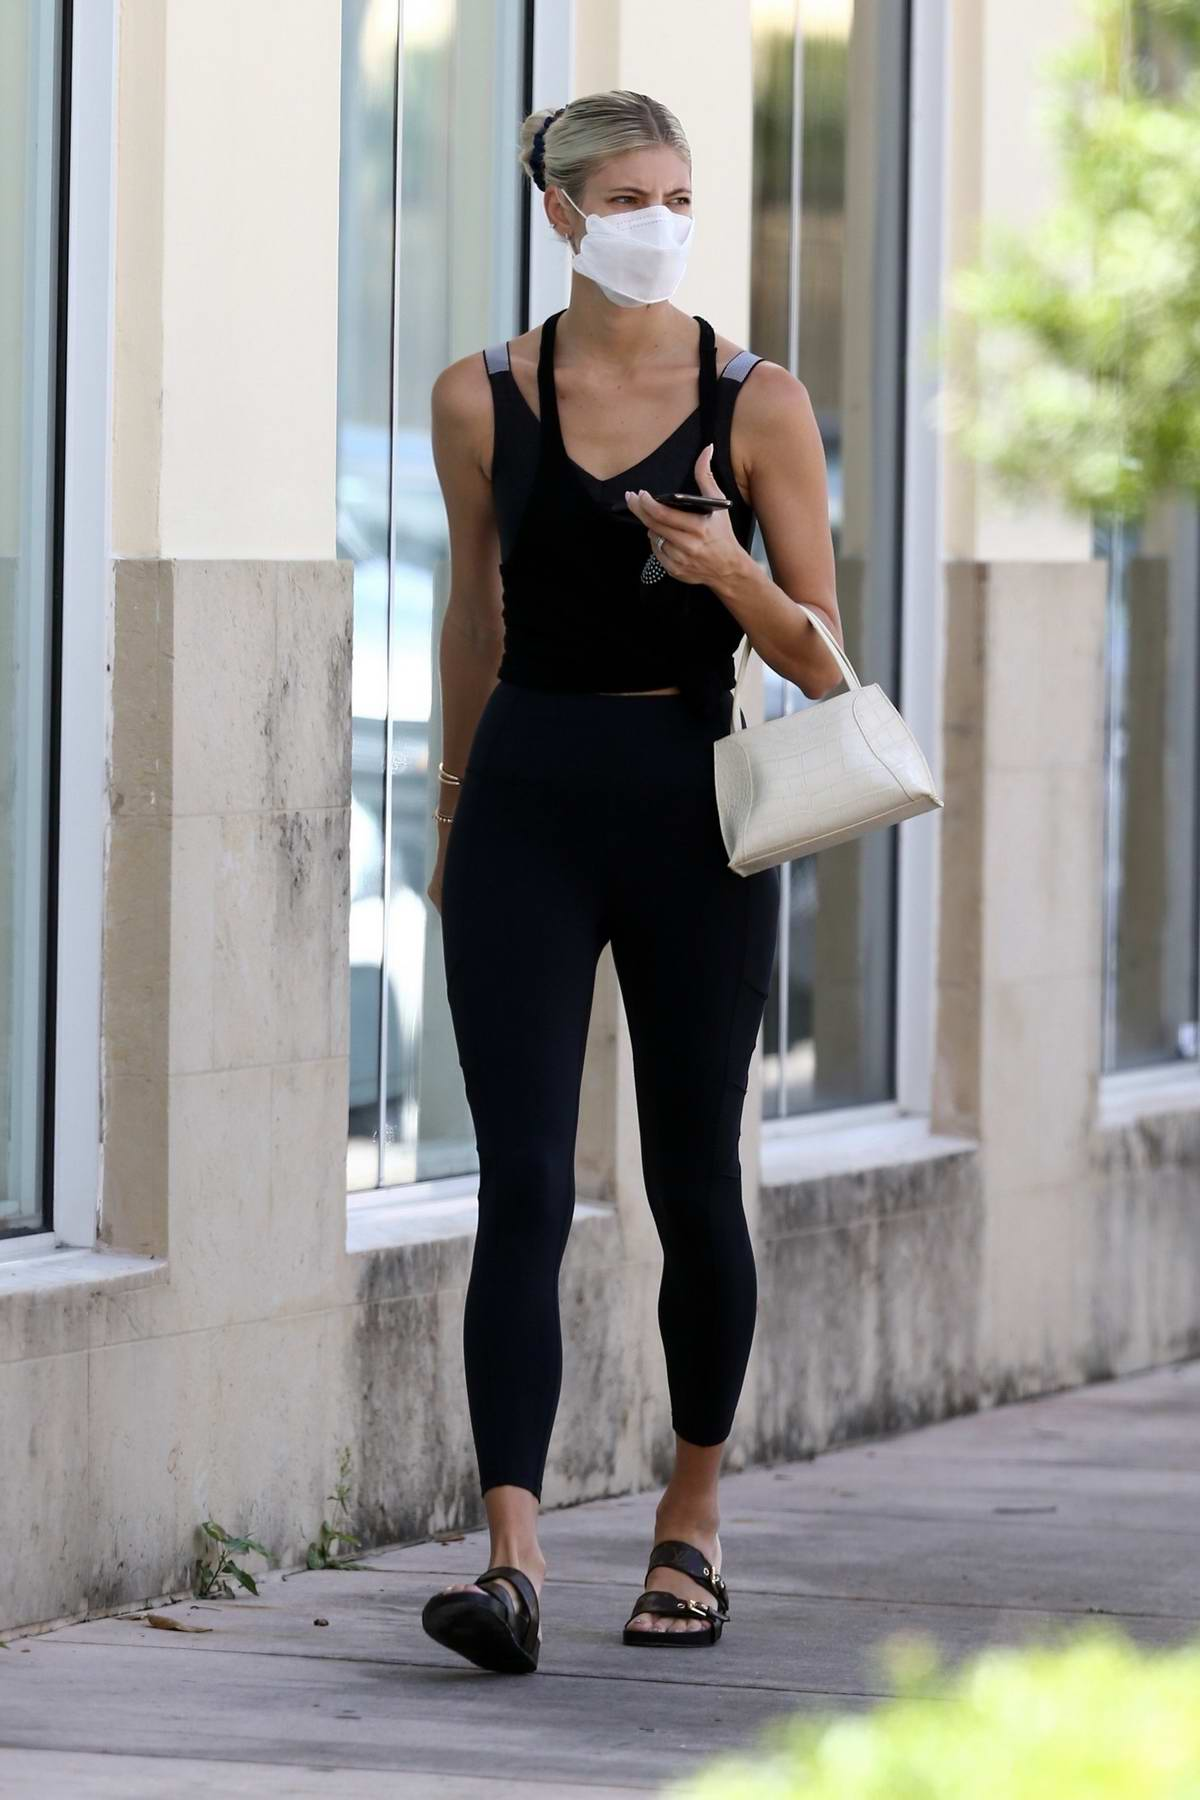 Devon Windsor dons all-black athleisure as she arrives at a Pilates class in Miami, Florida